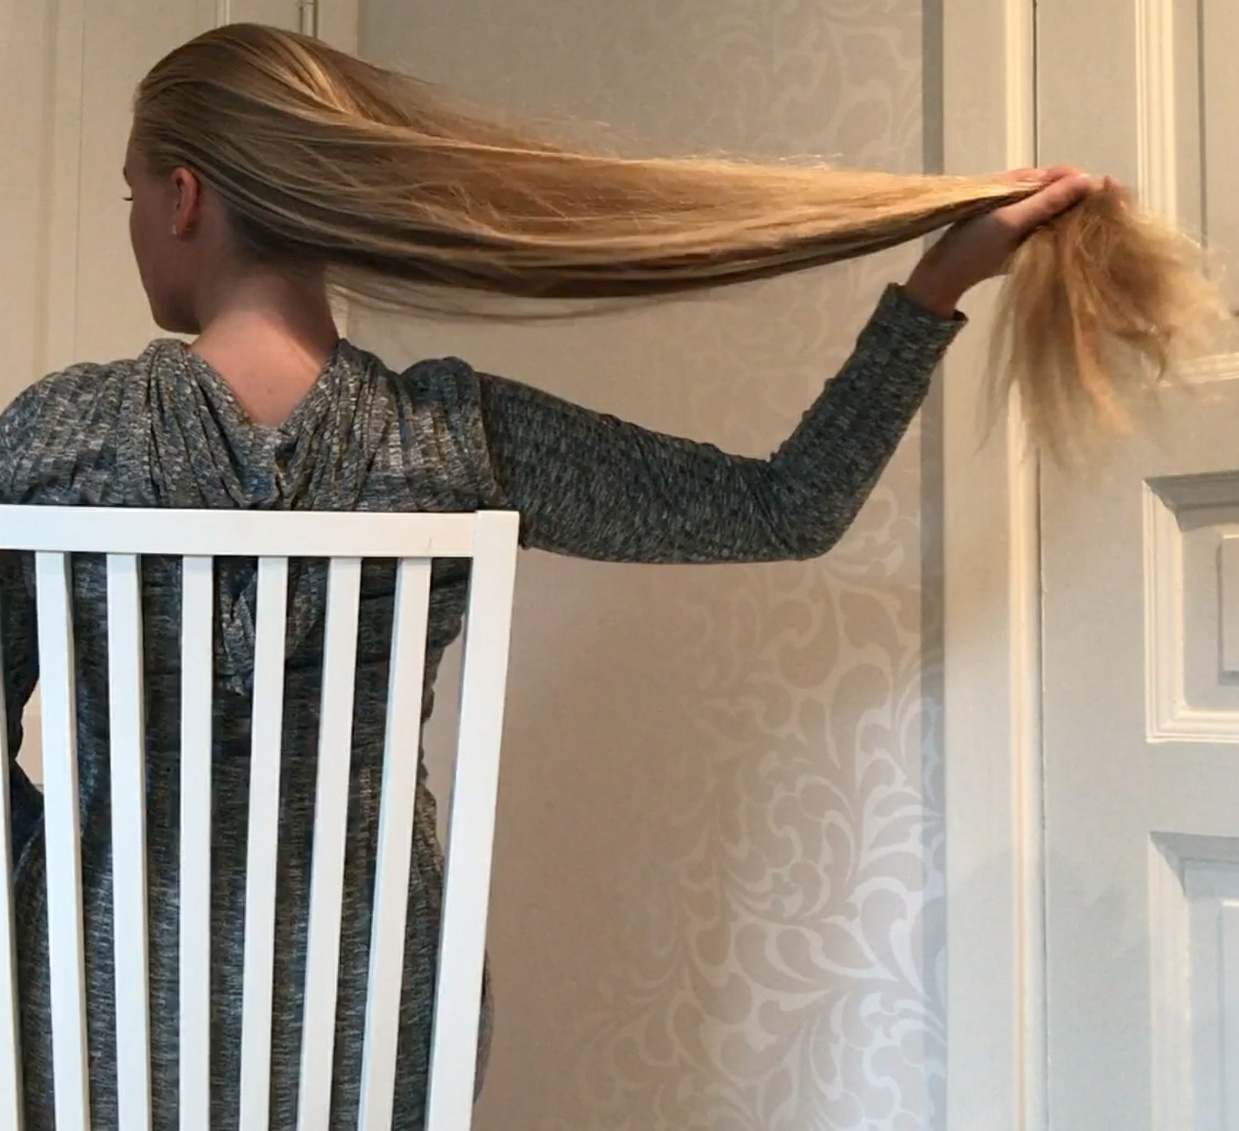 VIDEO - Swedish blonde in chair